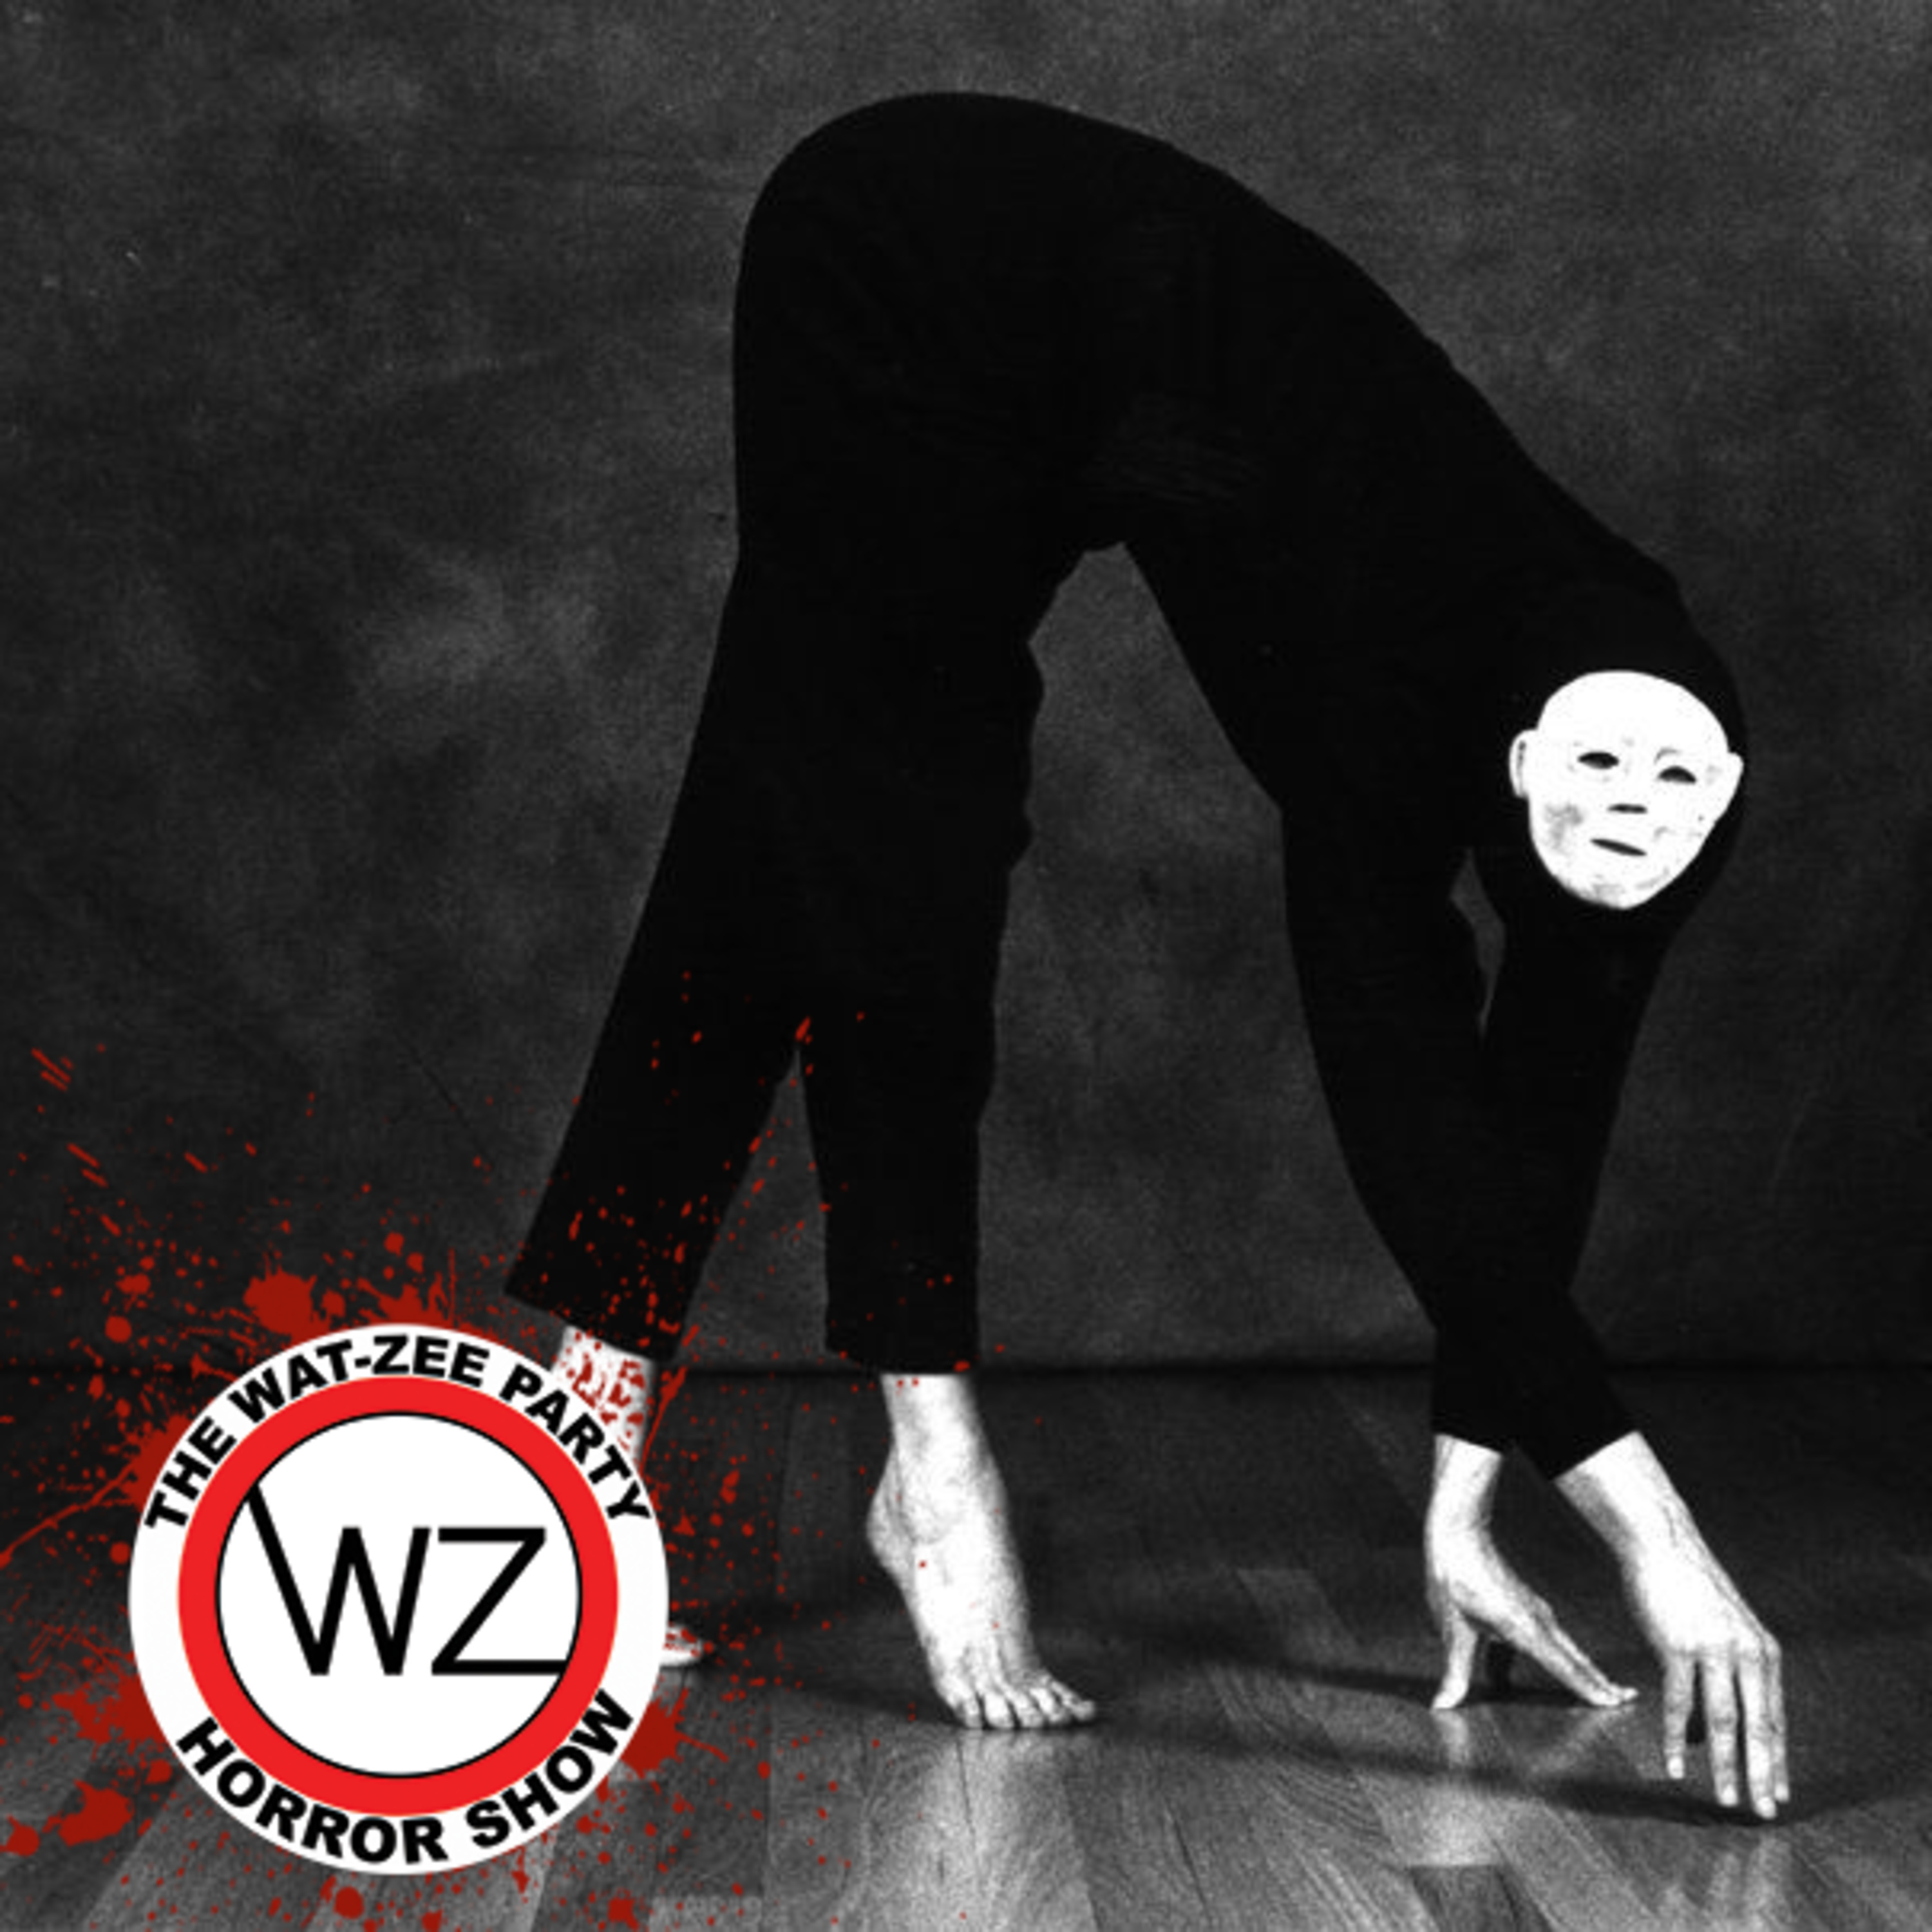 THE WAT-ZEE PARTY HORROR SHOW 013: The Poughkeepsie Tapes (2007)